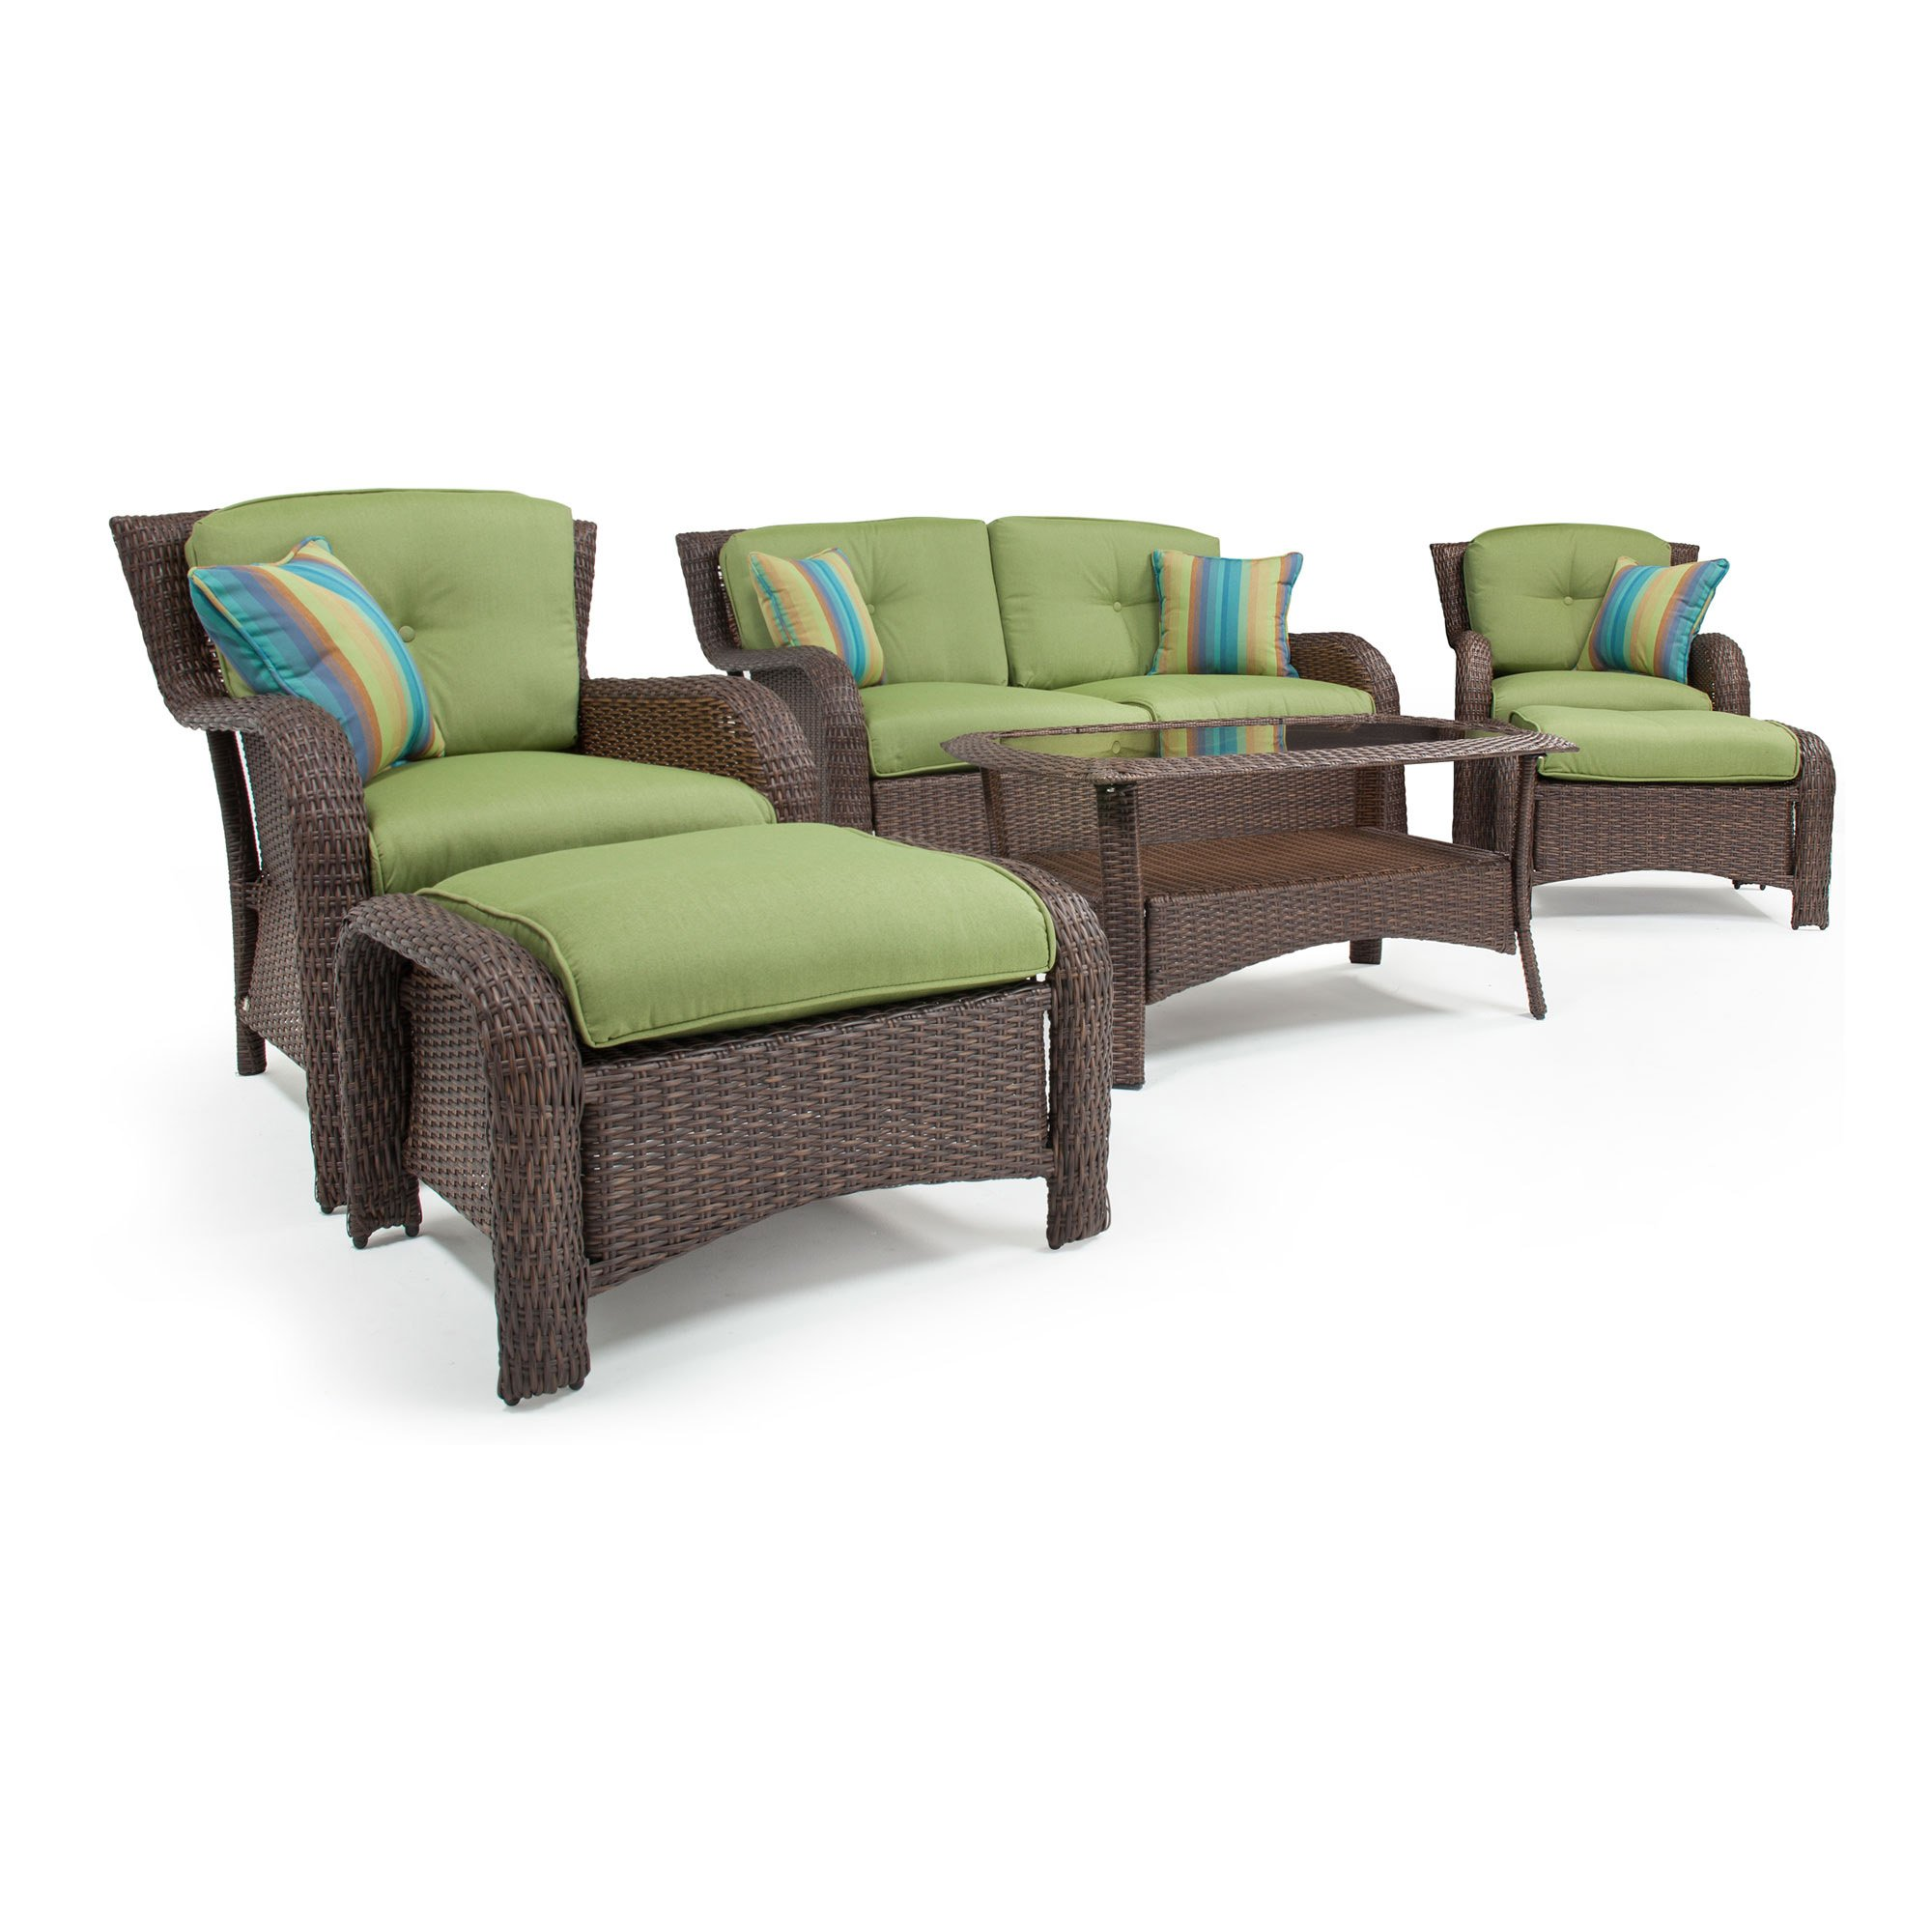 Best Rated In Patio Furniture Sets Amp Helpful Customer